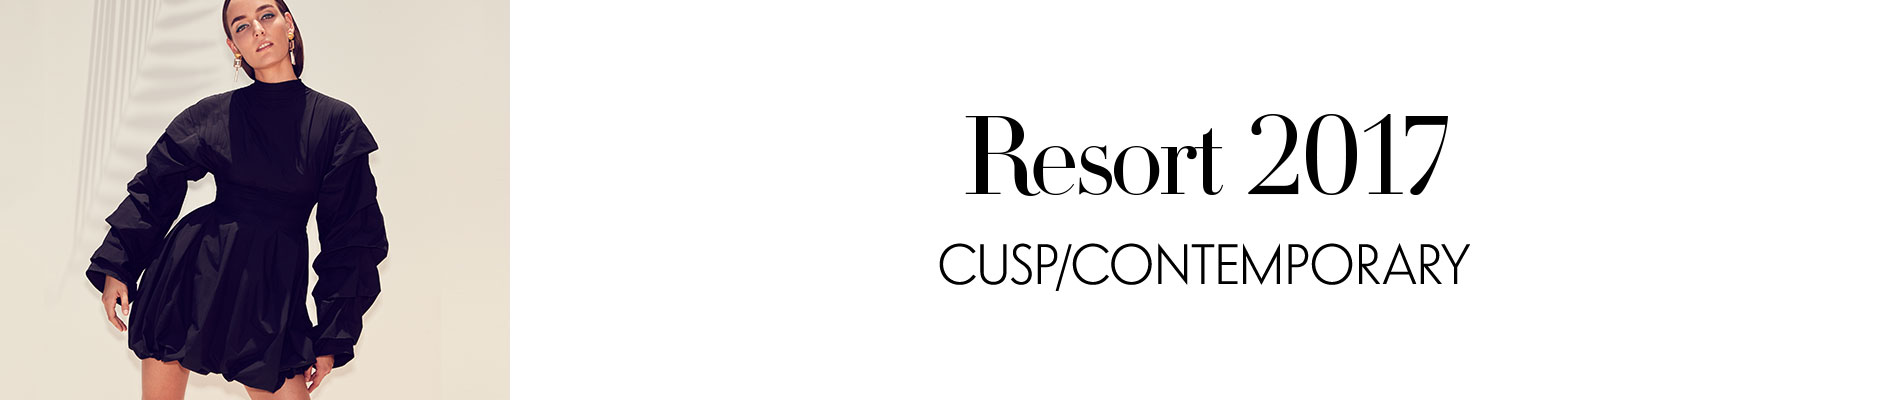 Resort 2017 - Cusp/Contemporary